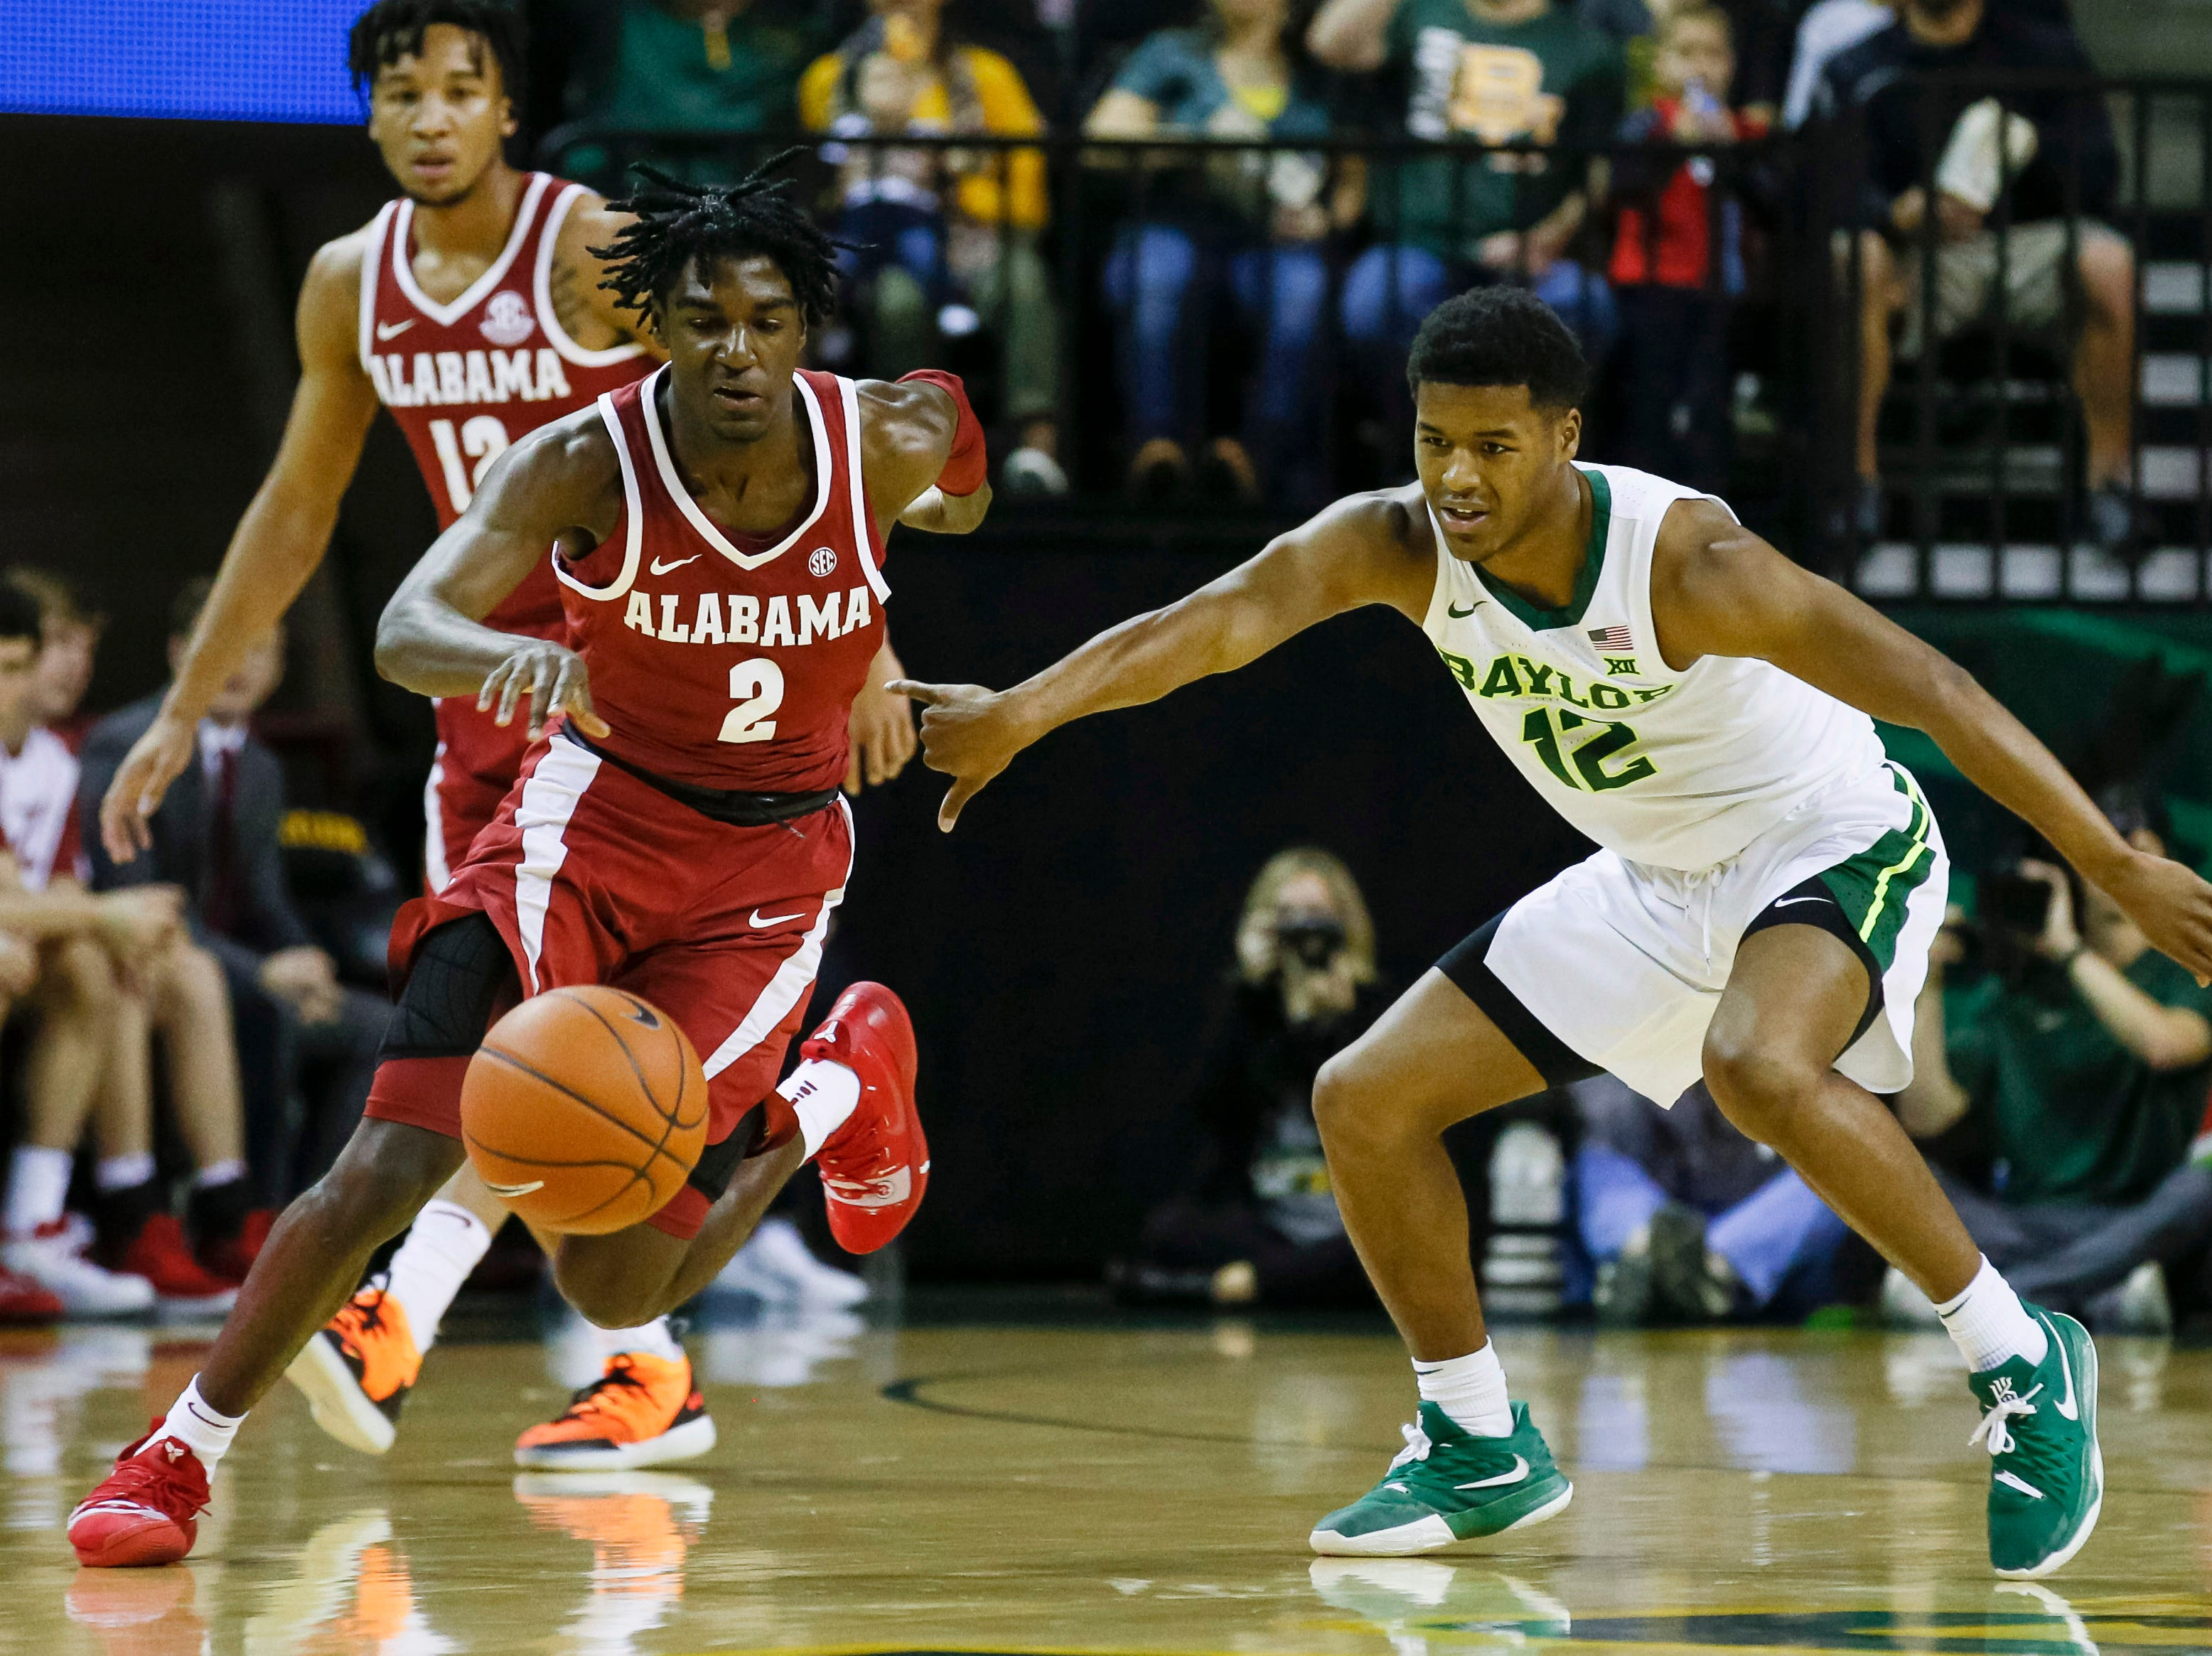 Jan 26, 2019; Waco, TX, USA; Alabama Crimson Tide guard Kira Lewis Jr. (2) battles for the ball with Baylor Bears guard Jared Butler (12) during the first half at Ferrell Center. Mandatory Credit: Ray Carlin-USA TODAY Sports